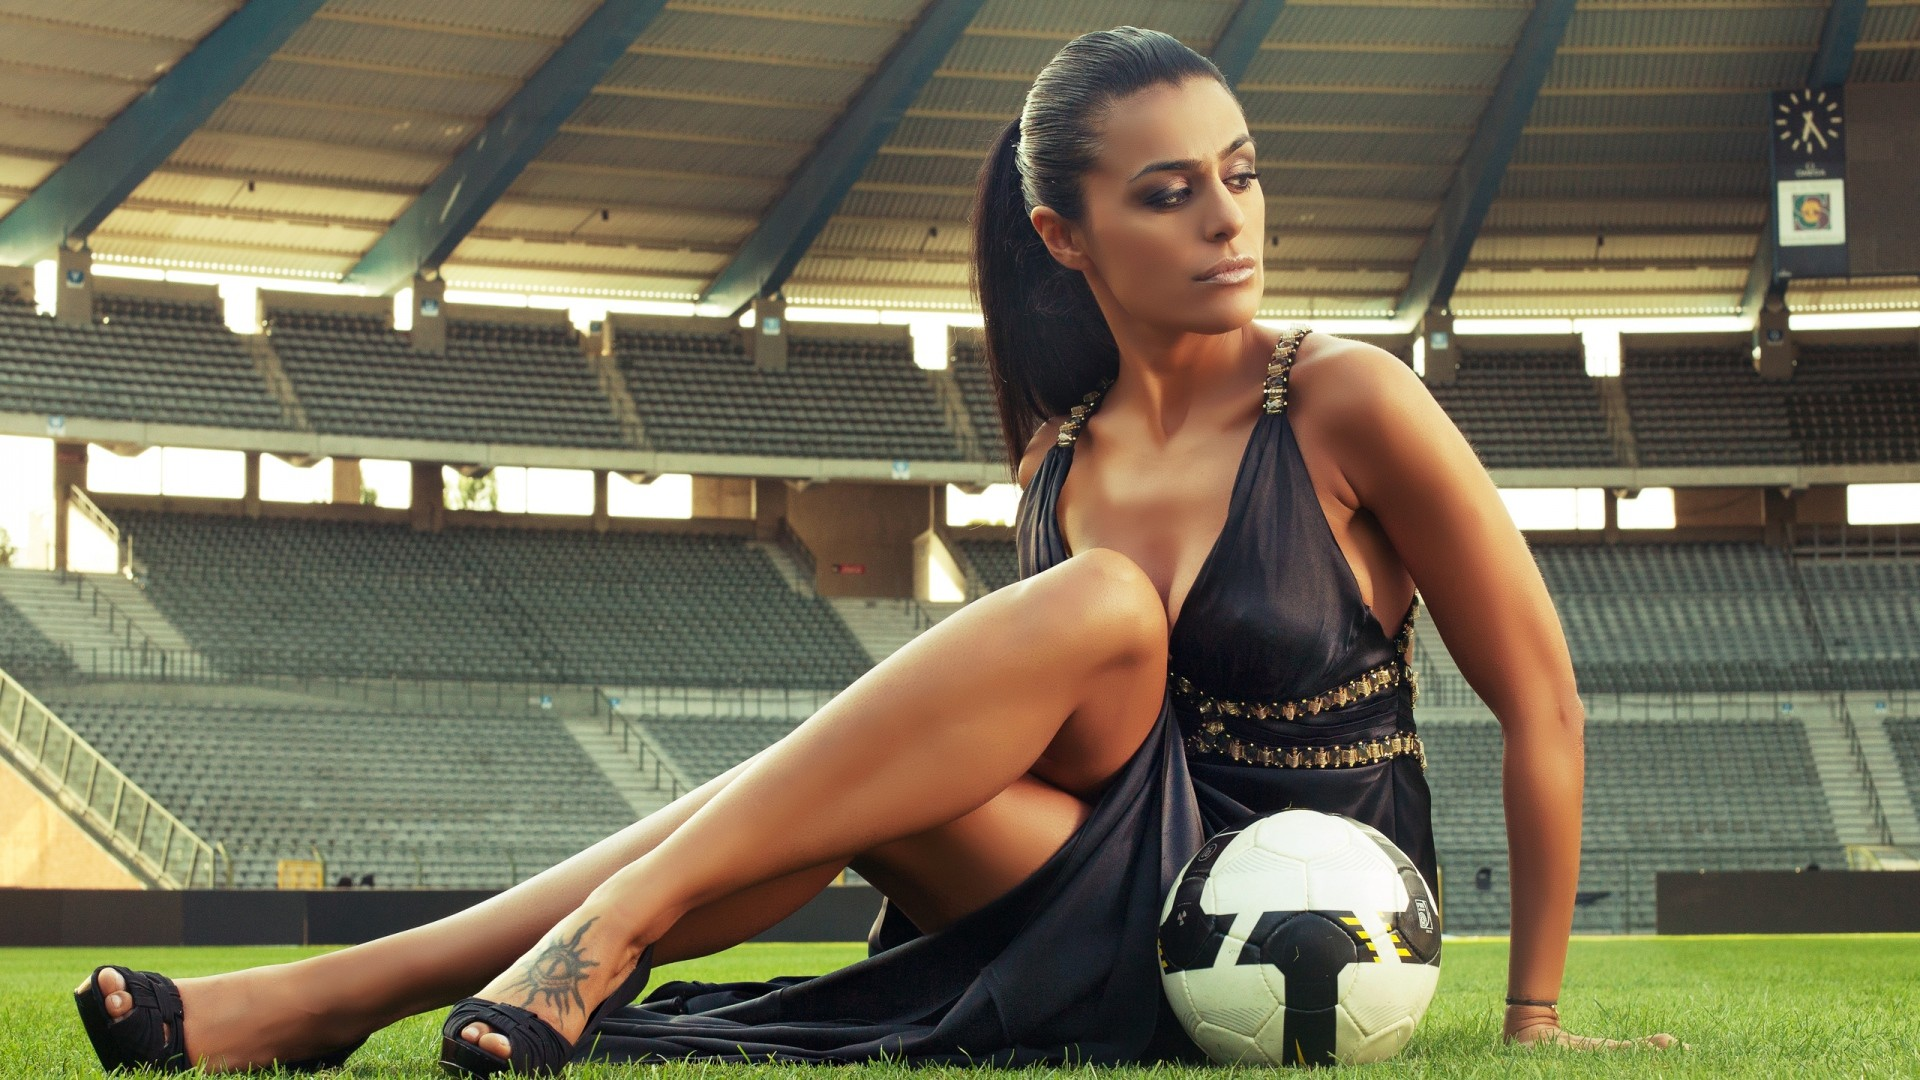 Preview wallpaper soccer, football, girl with the ball, stadium 1920×1080